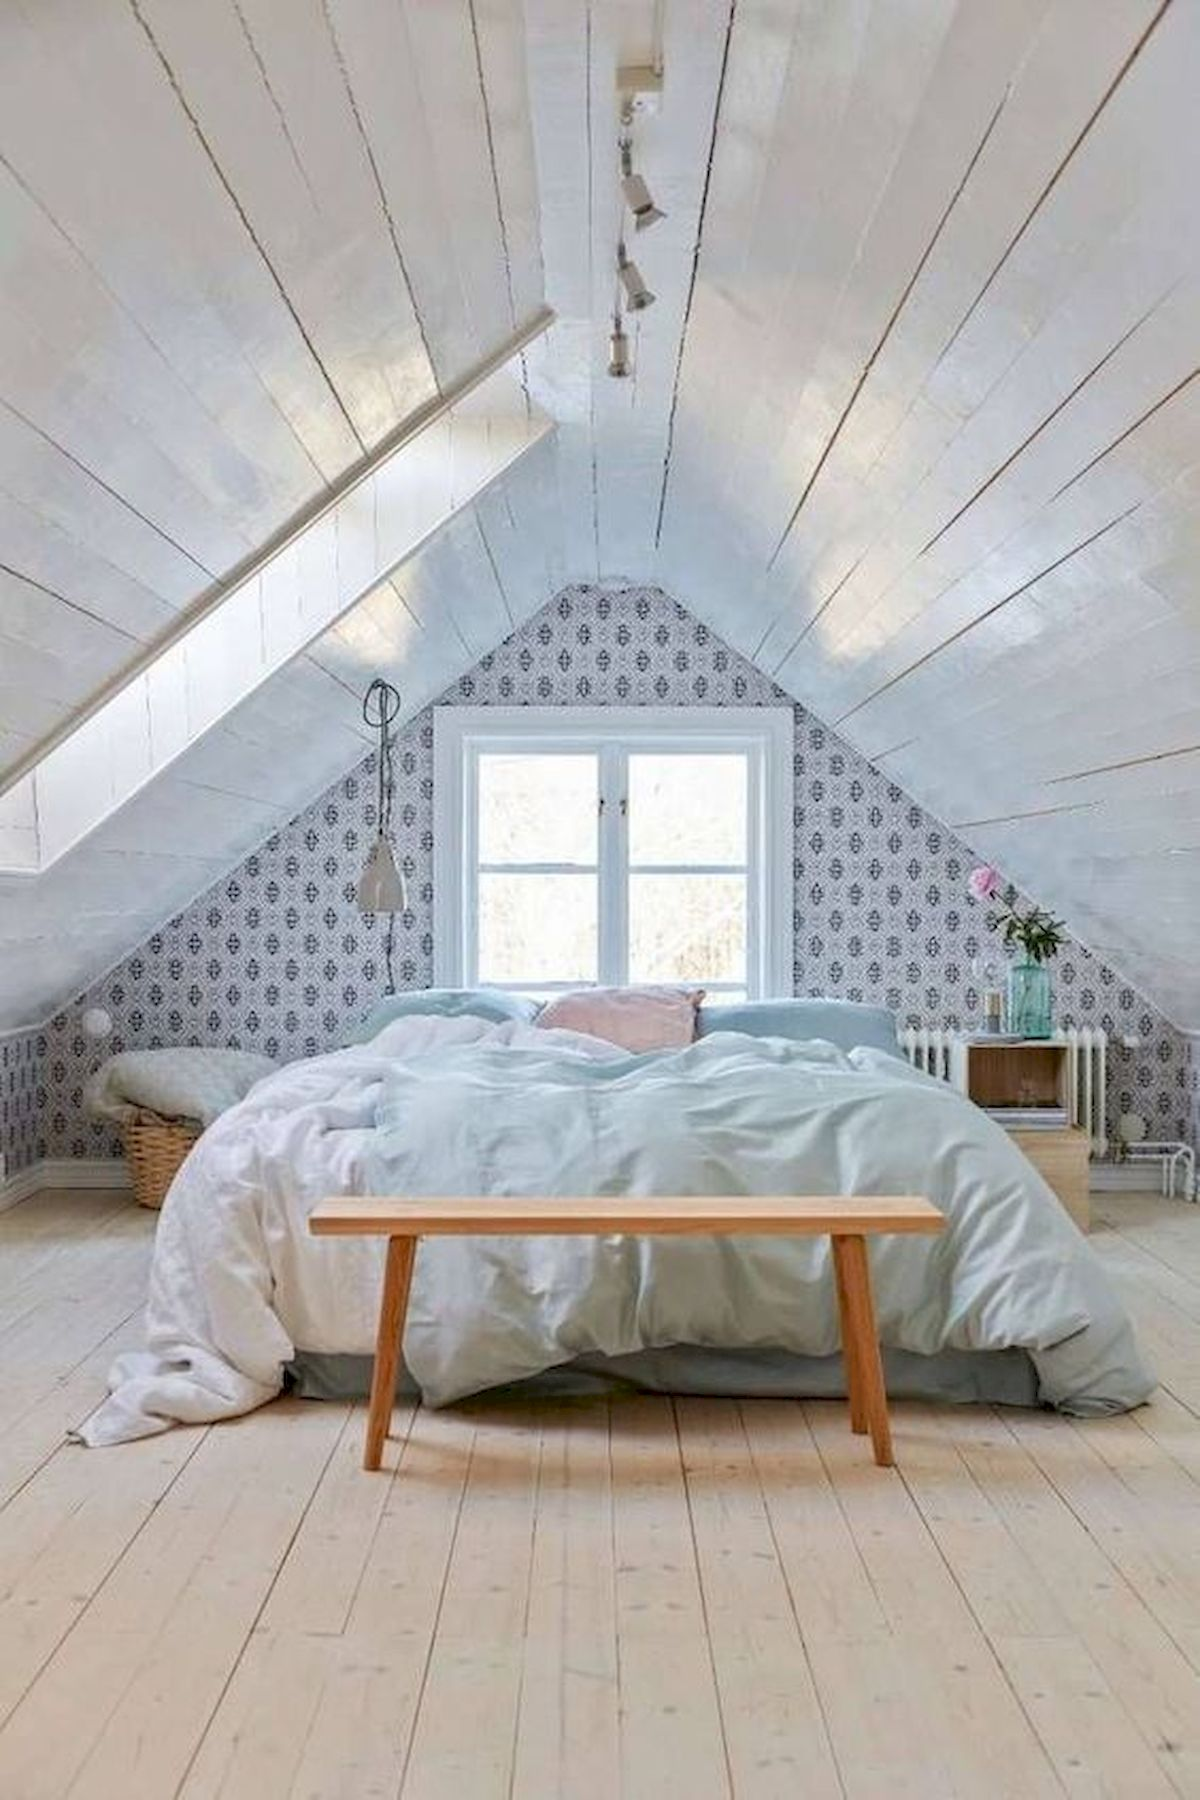 40 Awesome Attic Bedroom Design and Decorating Ideas (9)